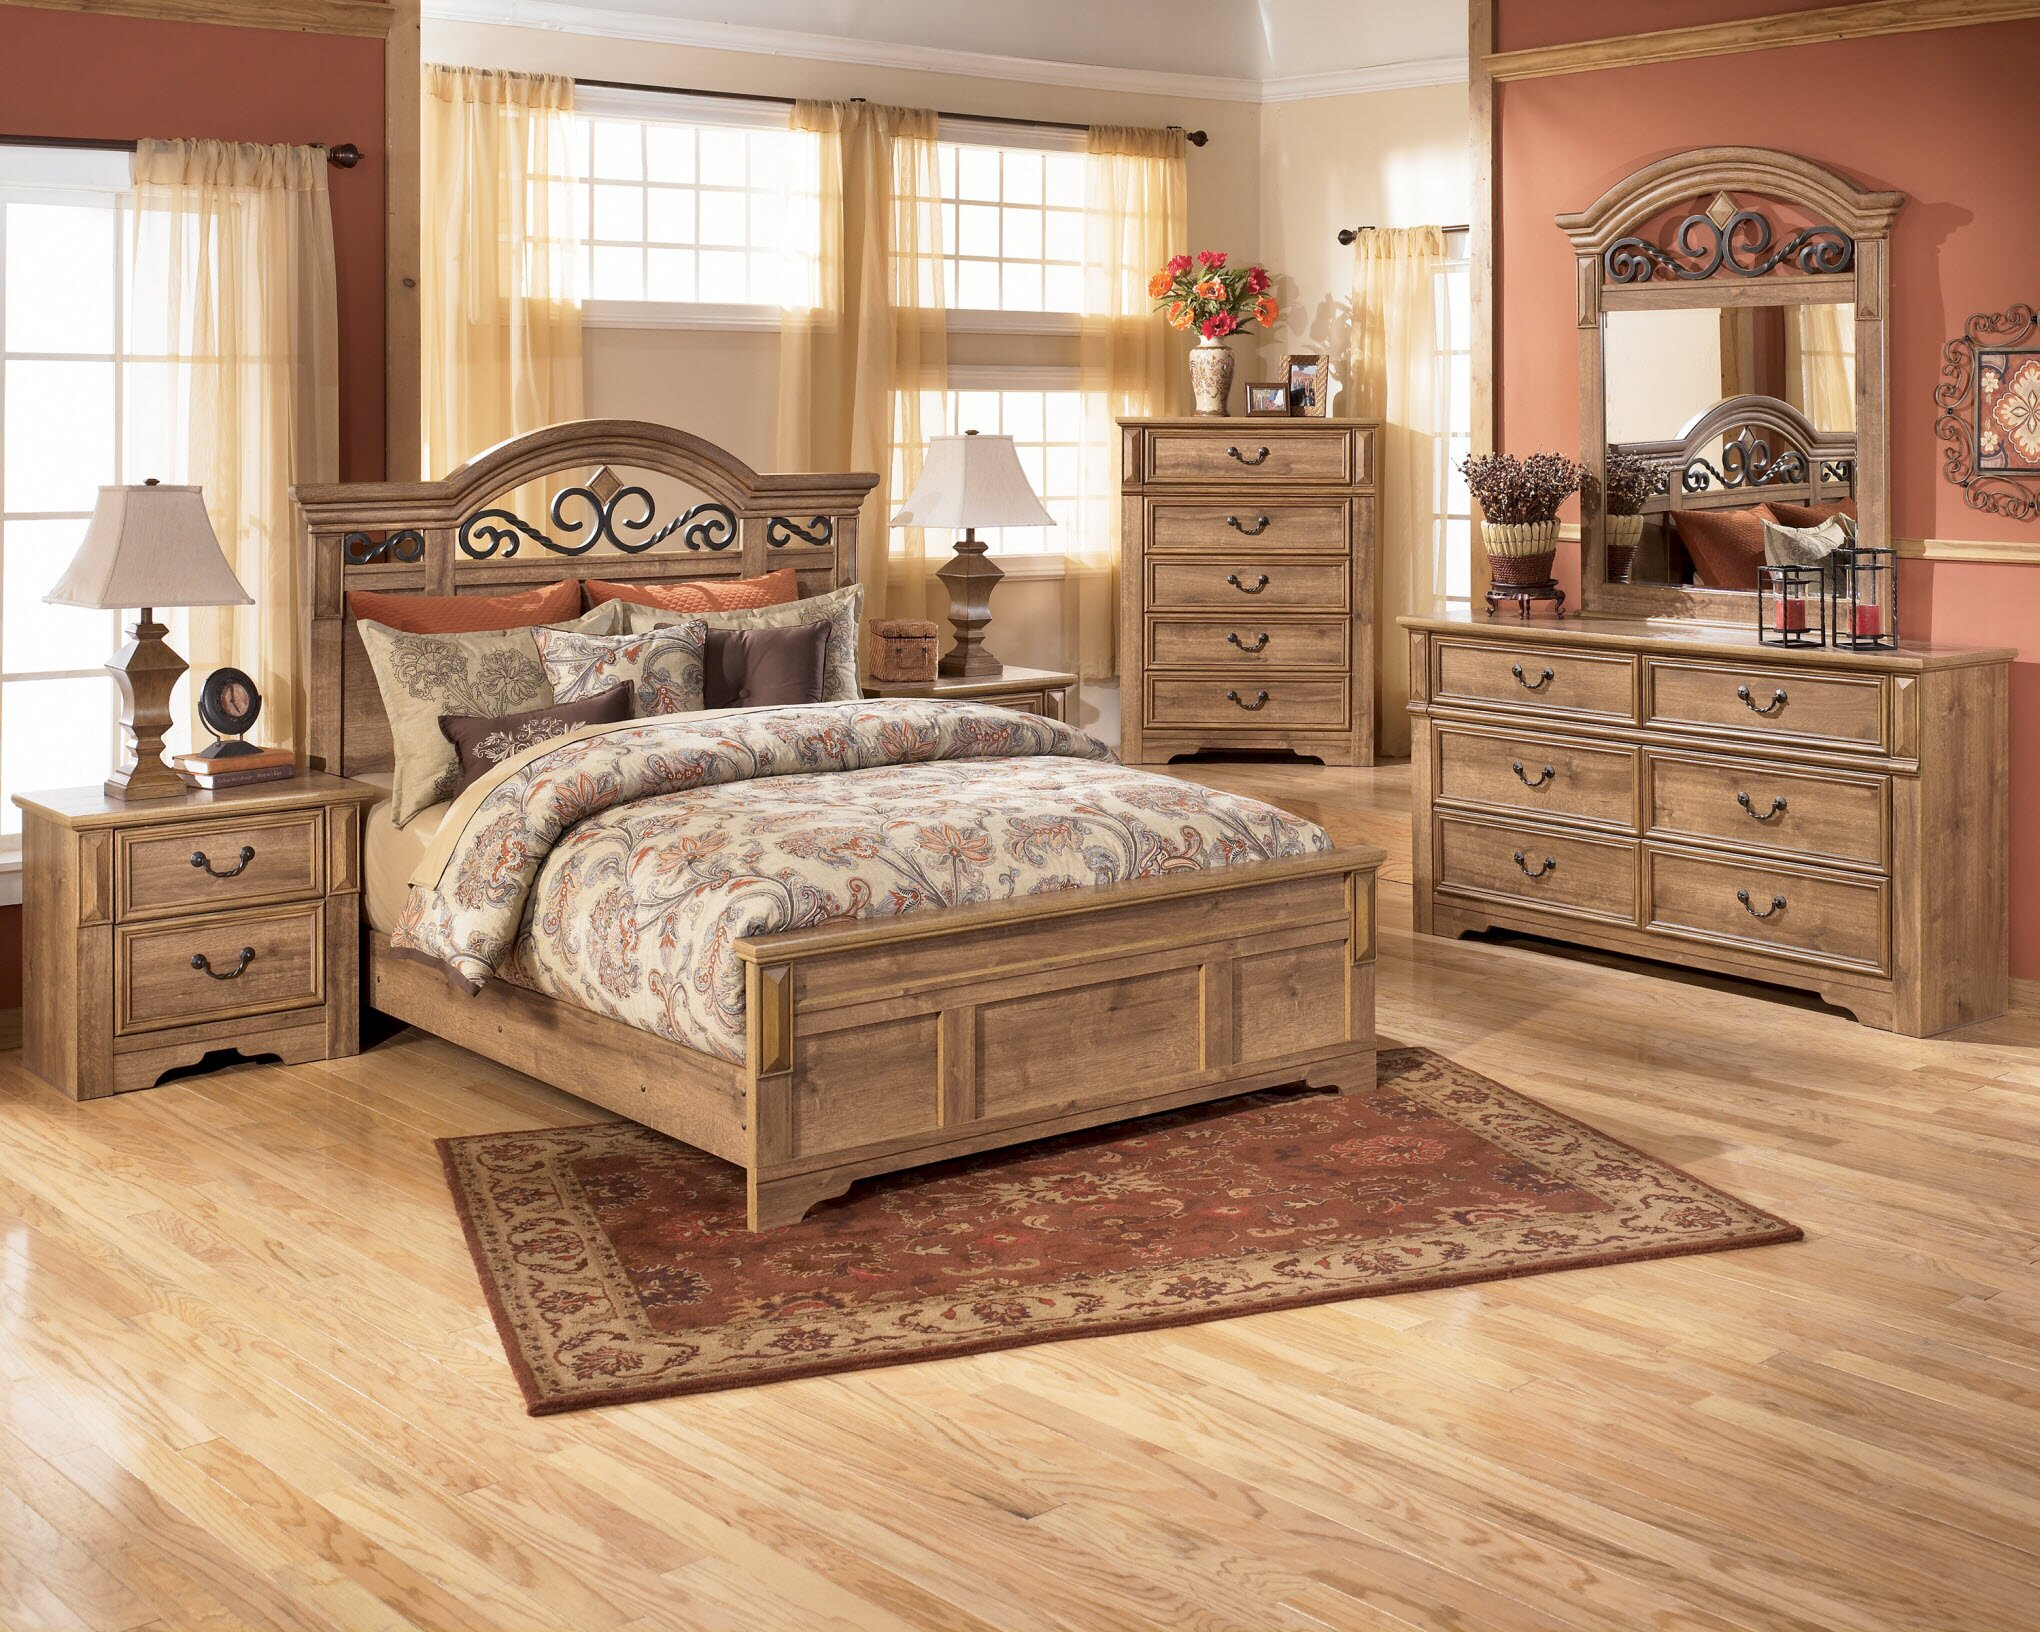 bedroom craigslist bedroom sets for elegant bedroom furniture ideas. Black Bedroom Furniture Sets. Home Design Ideas